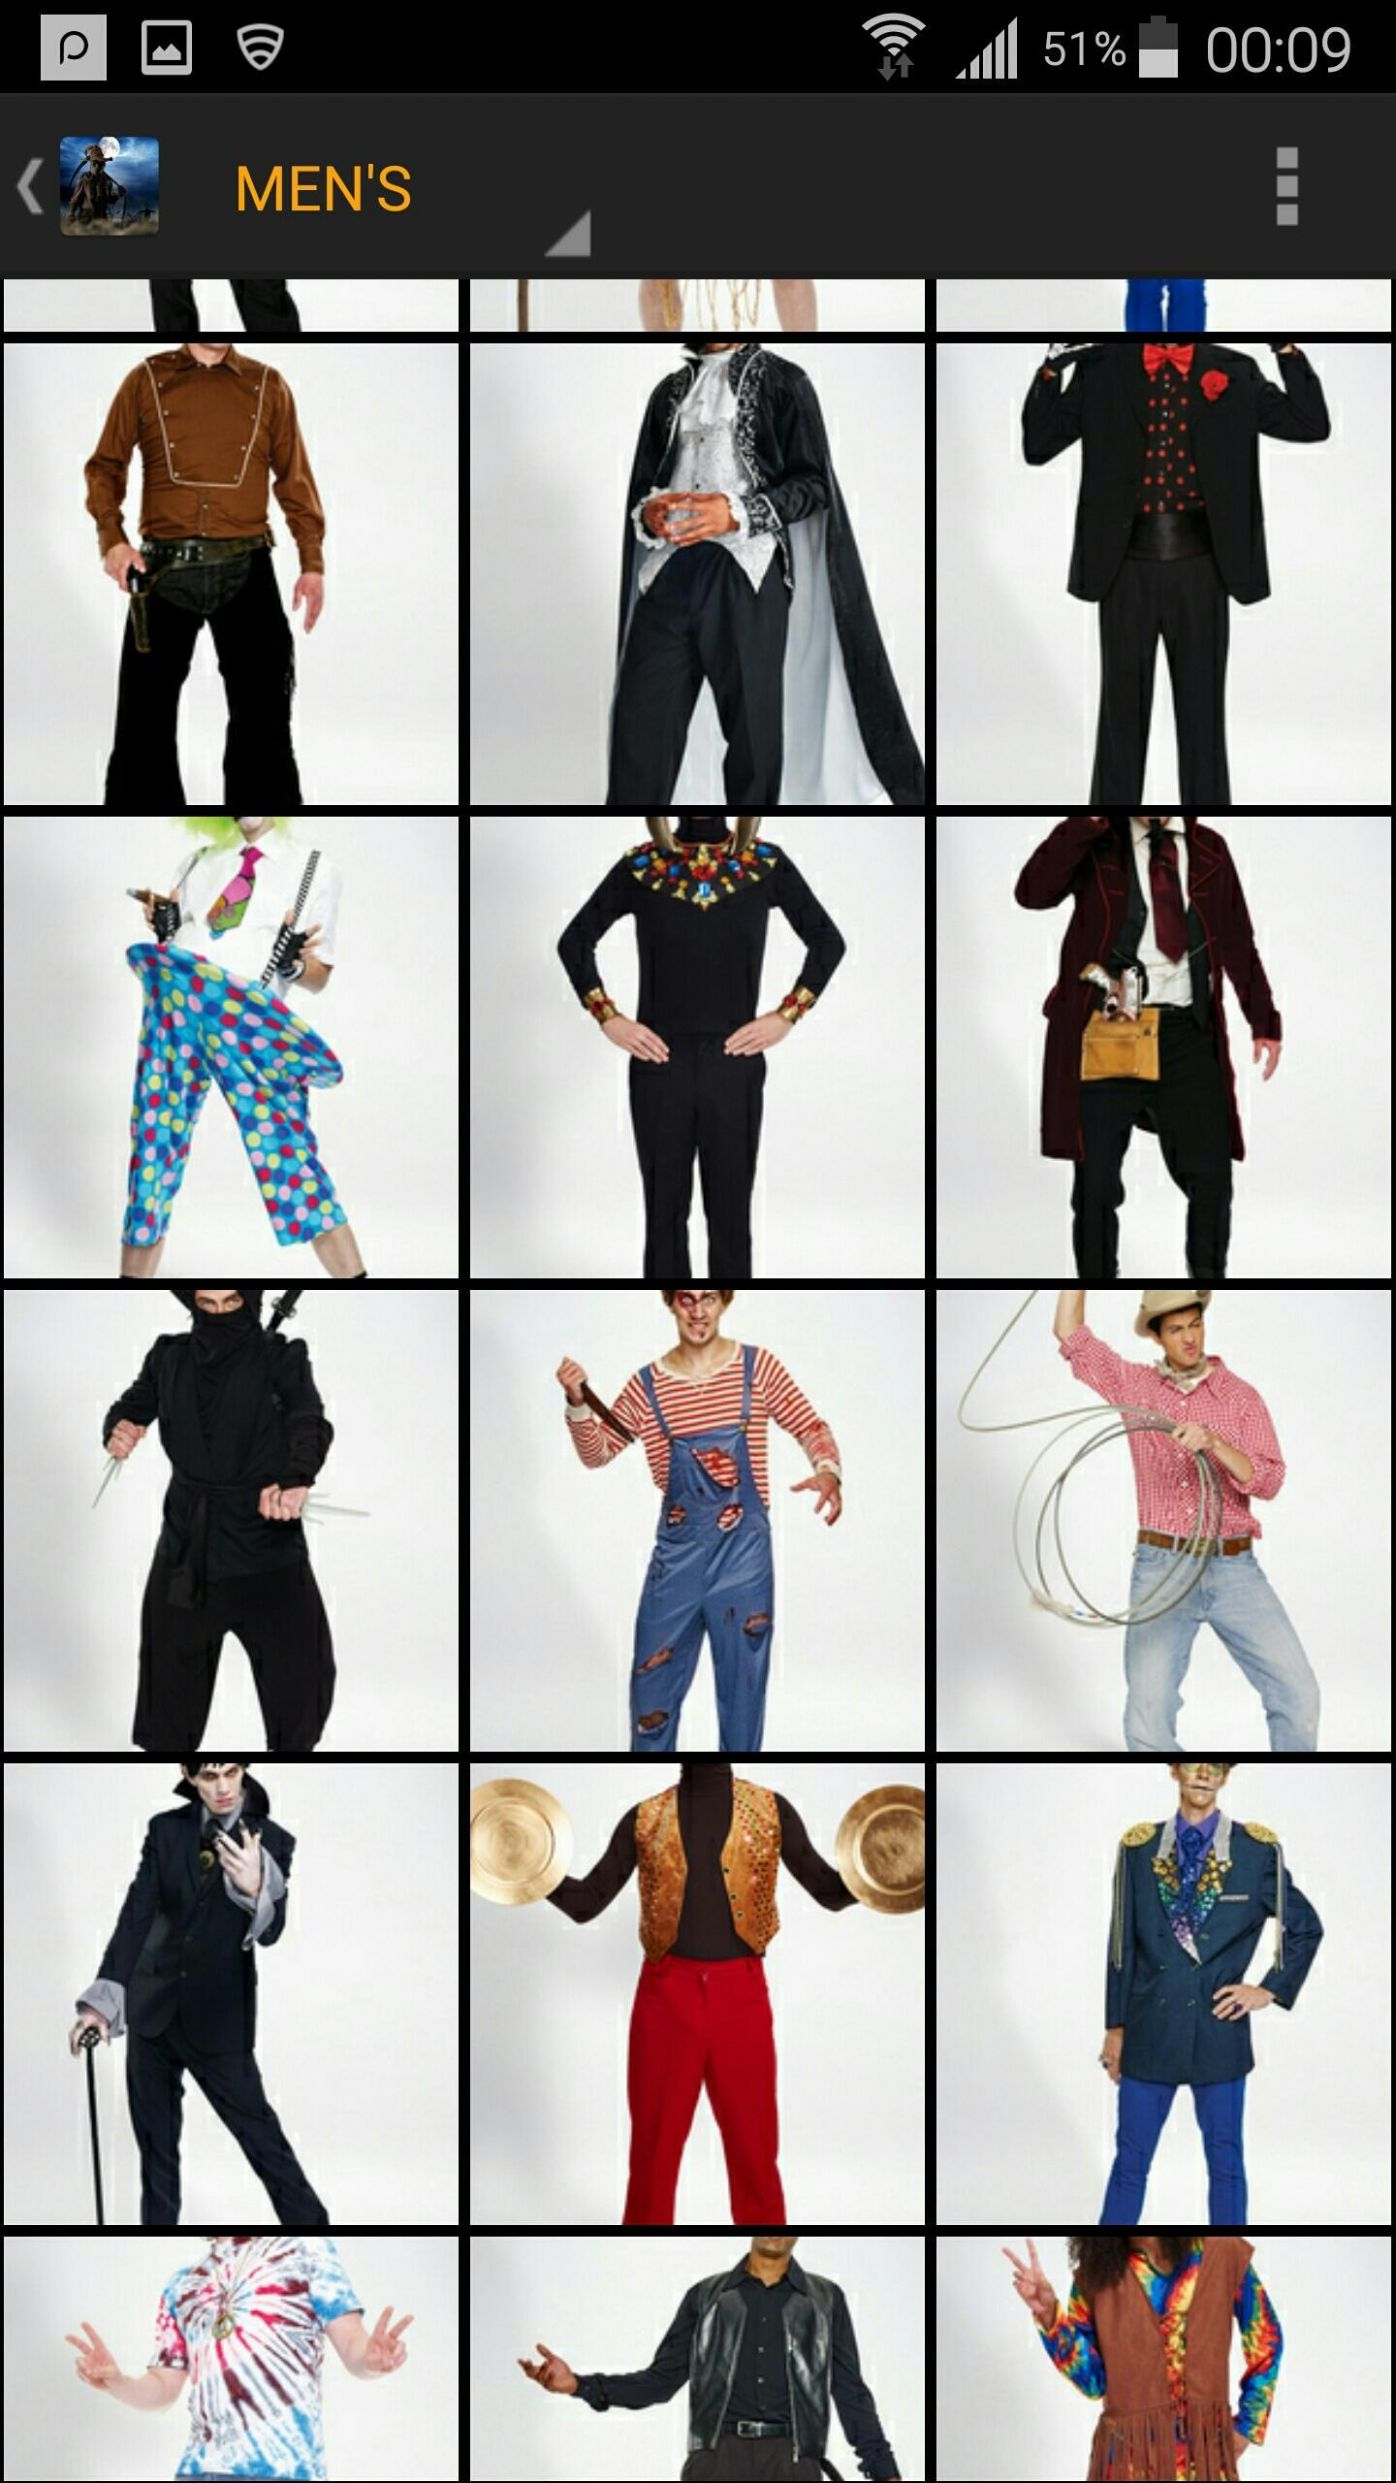 Awesome Halloween Costume Ideas 12 für Android - APK herunterladen - halloween ideas for 2020